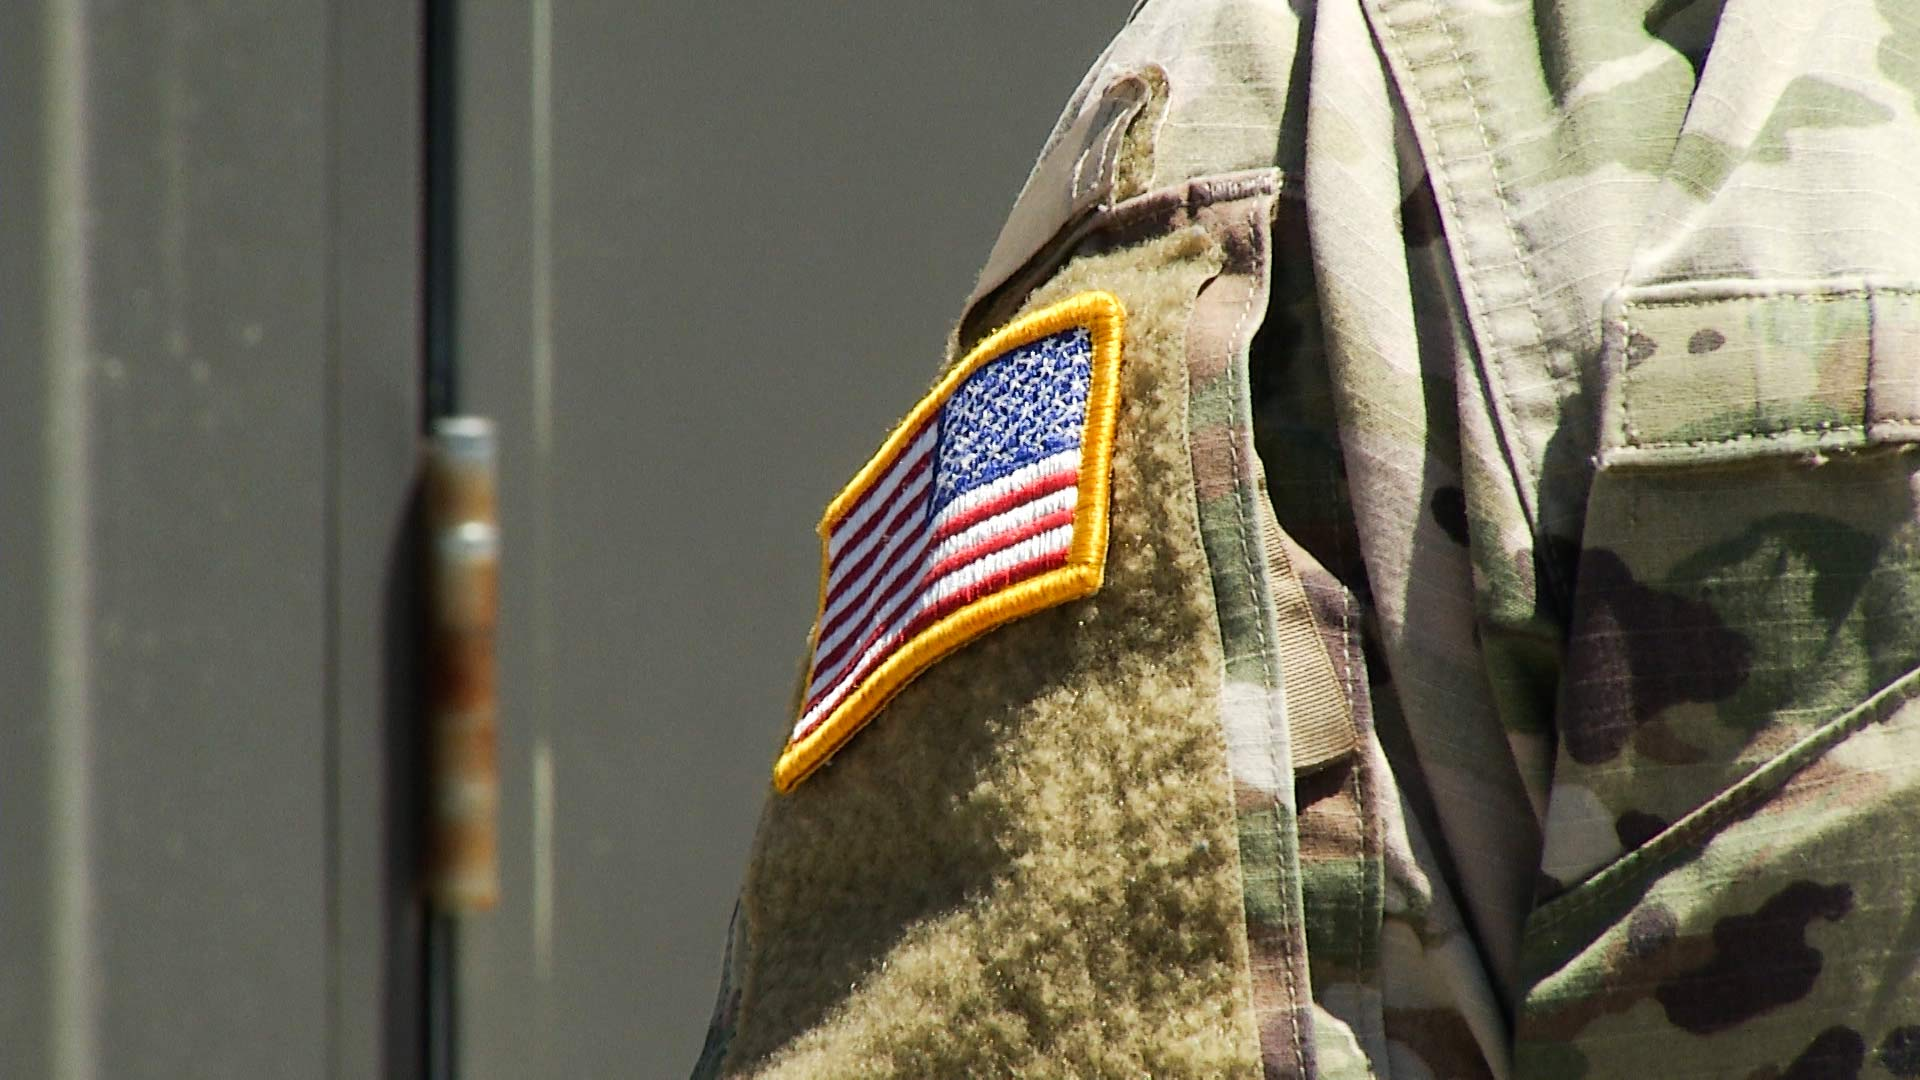 A U.S. flag on the uniform of a member of the National Guard.